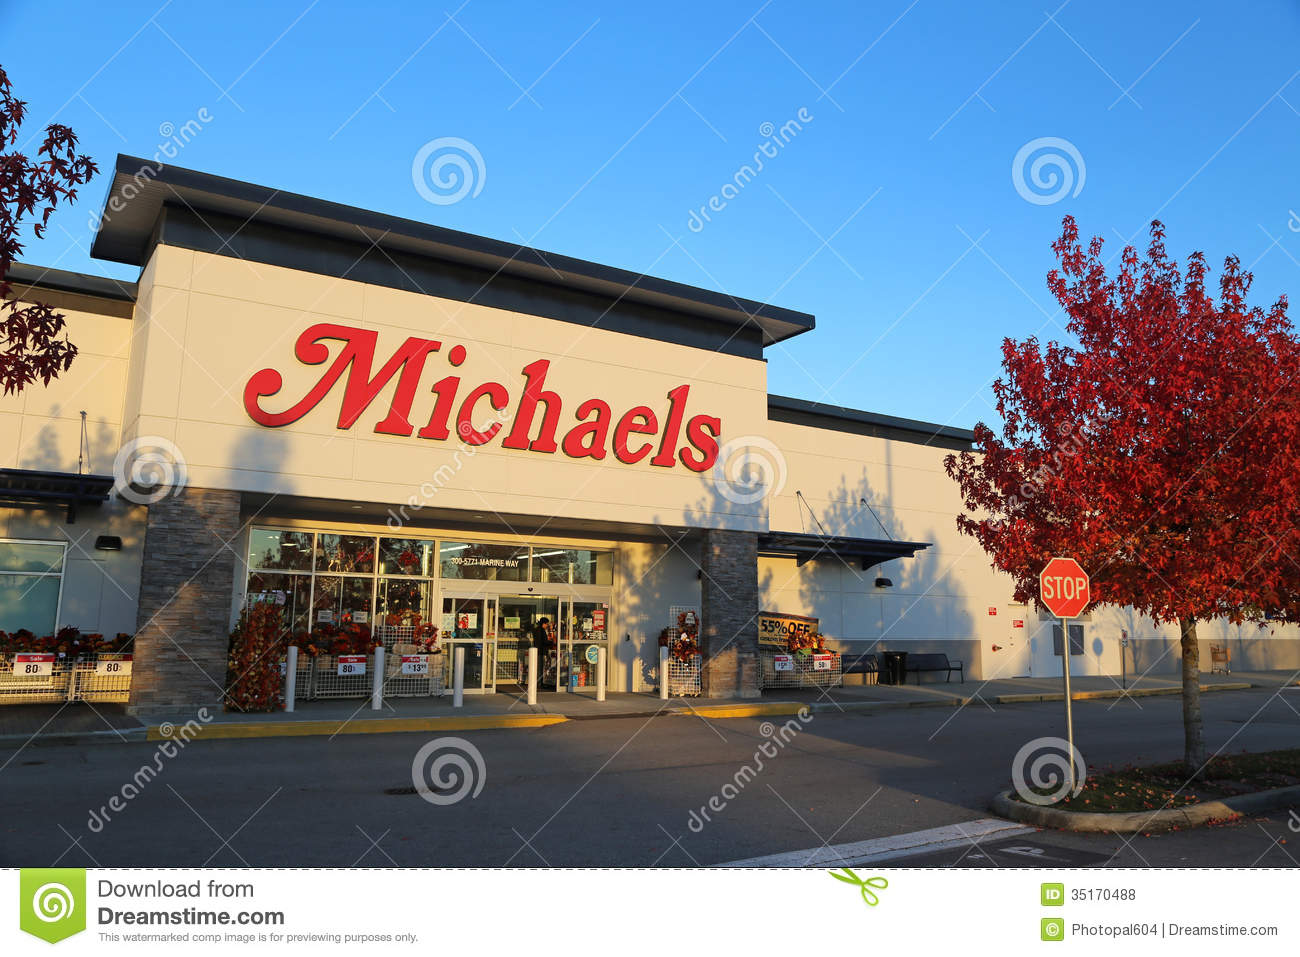 Michaels accepts returns from customers who possess valid photo identification cards. All return activity is tracked by the company, and Michaels often limits the .